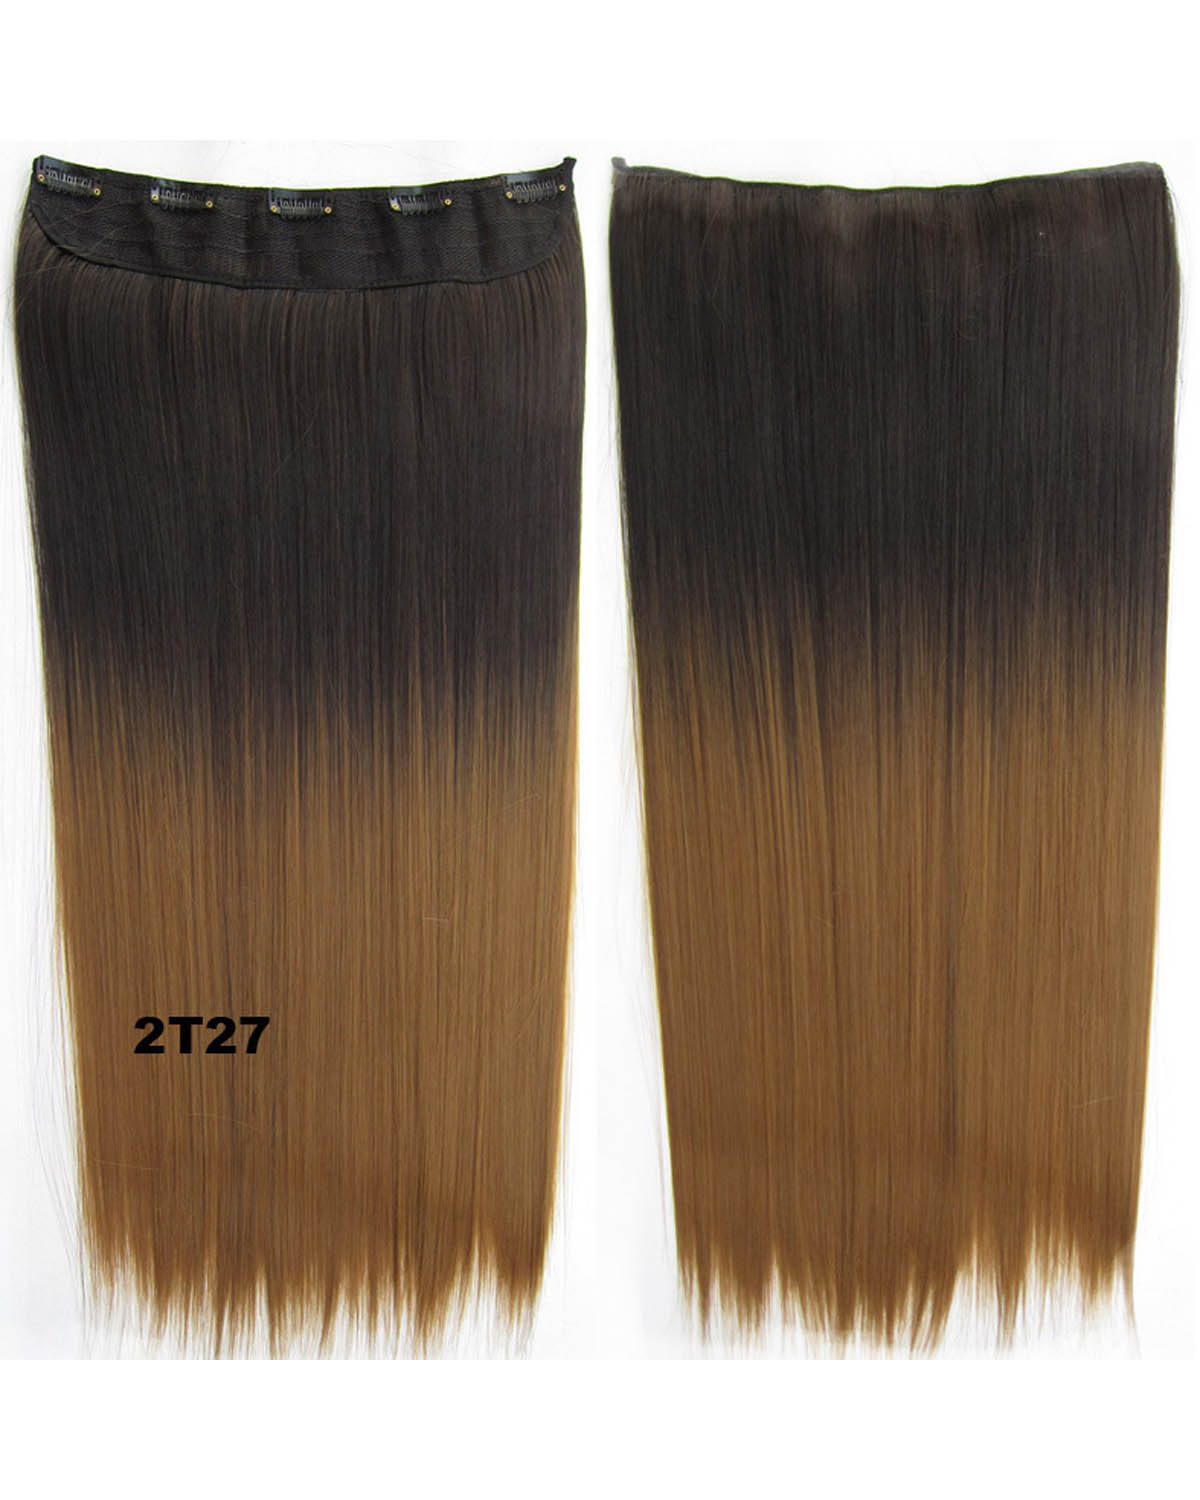 24 Inch Female Newly Korean Style Straight One Piece 5 Clips Clip in Synthetic Hair Extension Ombre 2T27